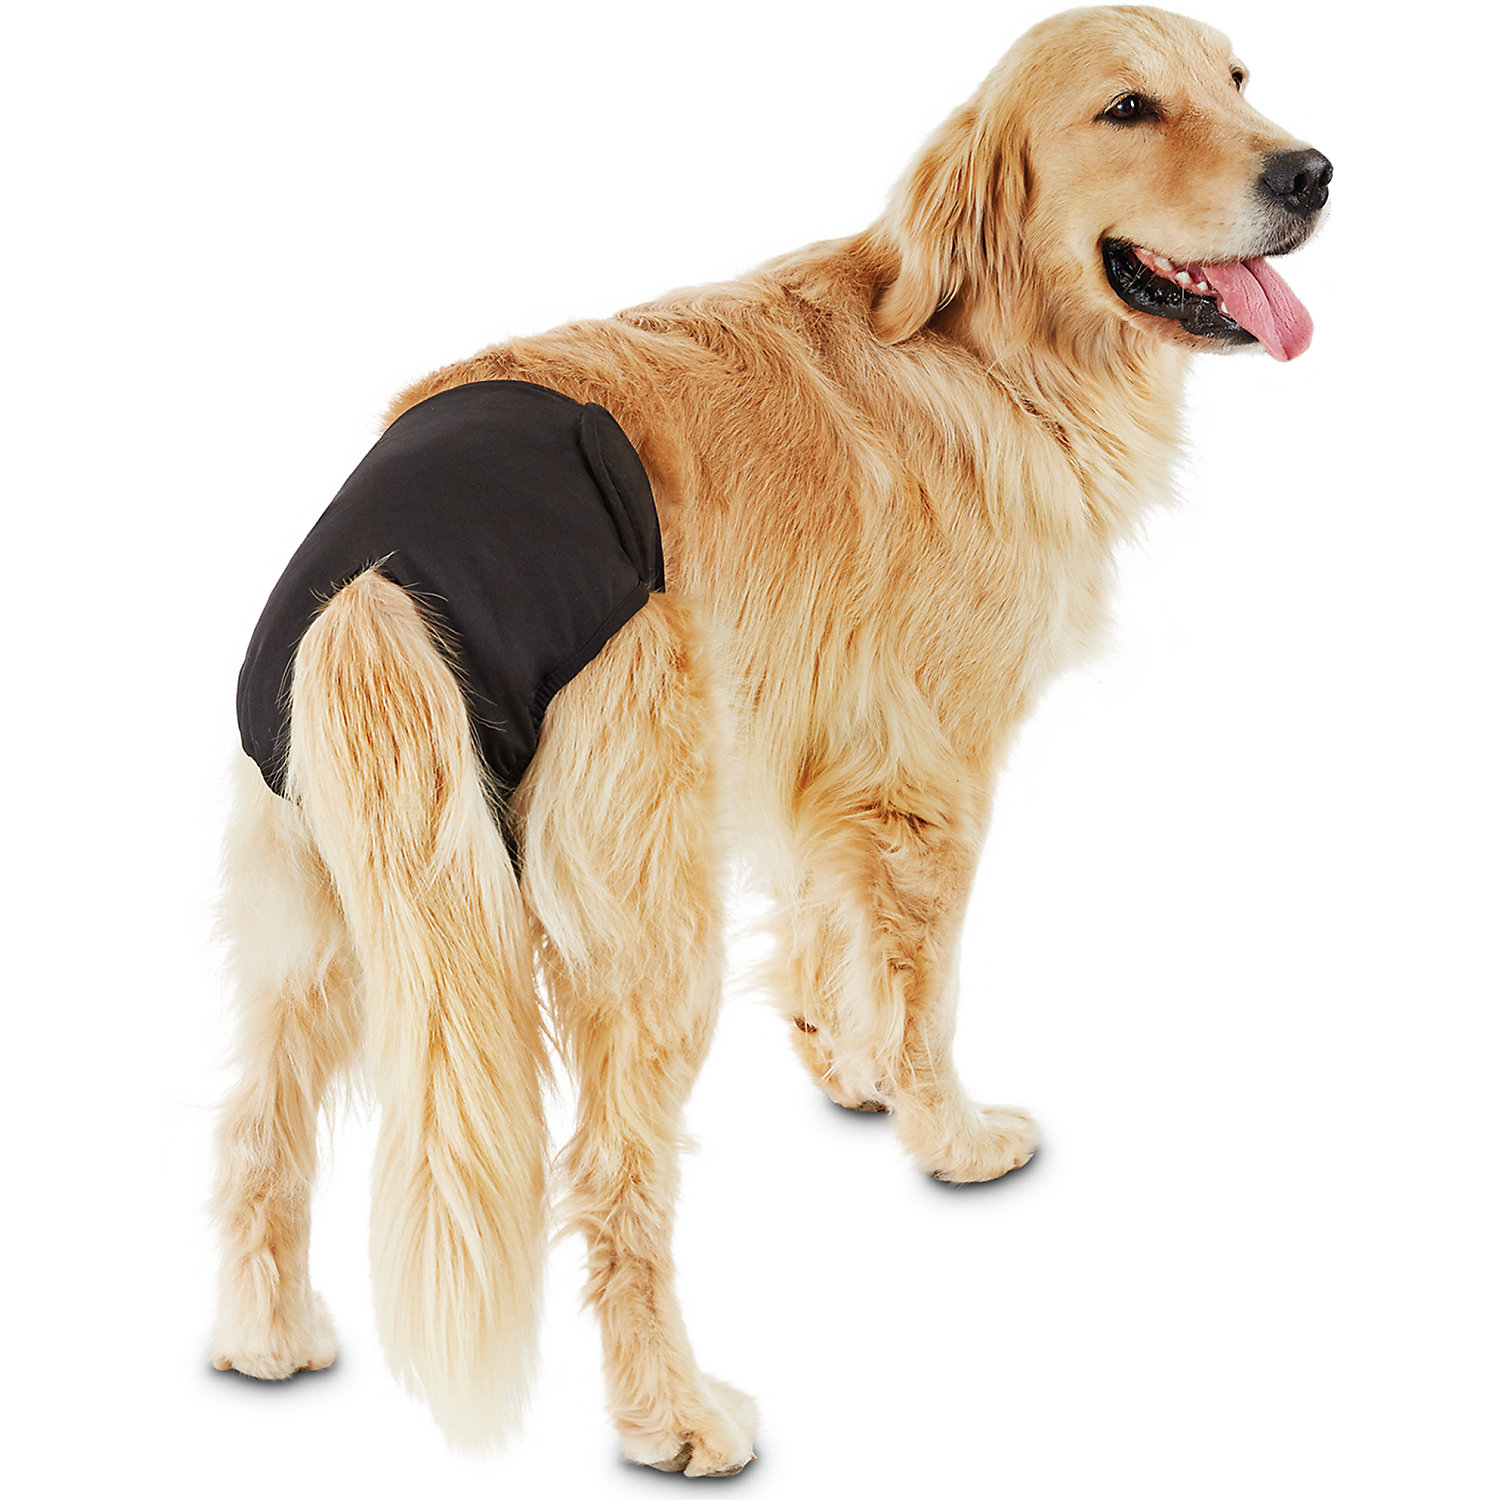 So Phresh Washable Diaper for Dogs, X-Large